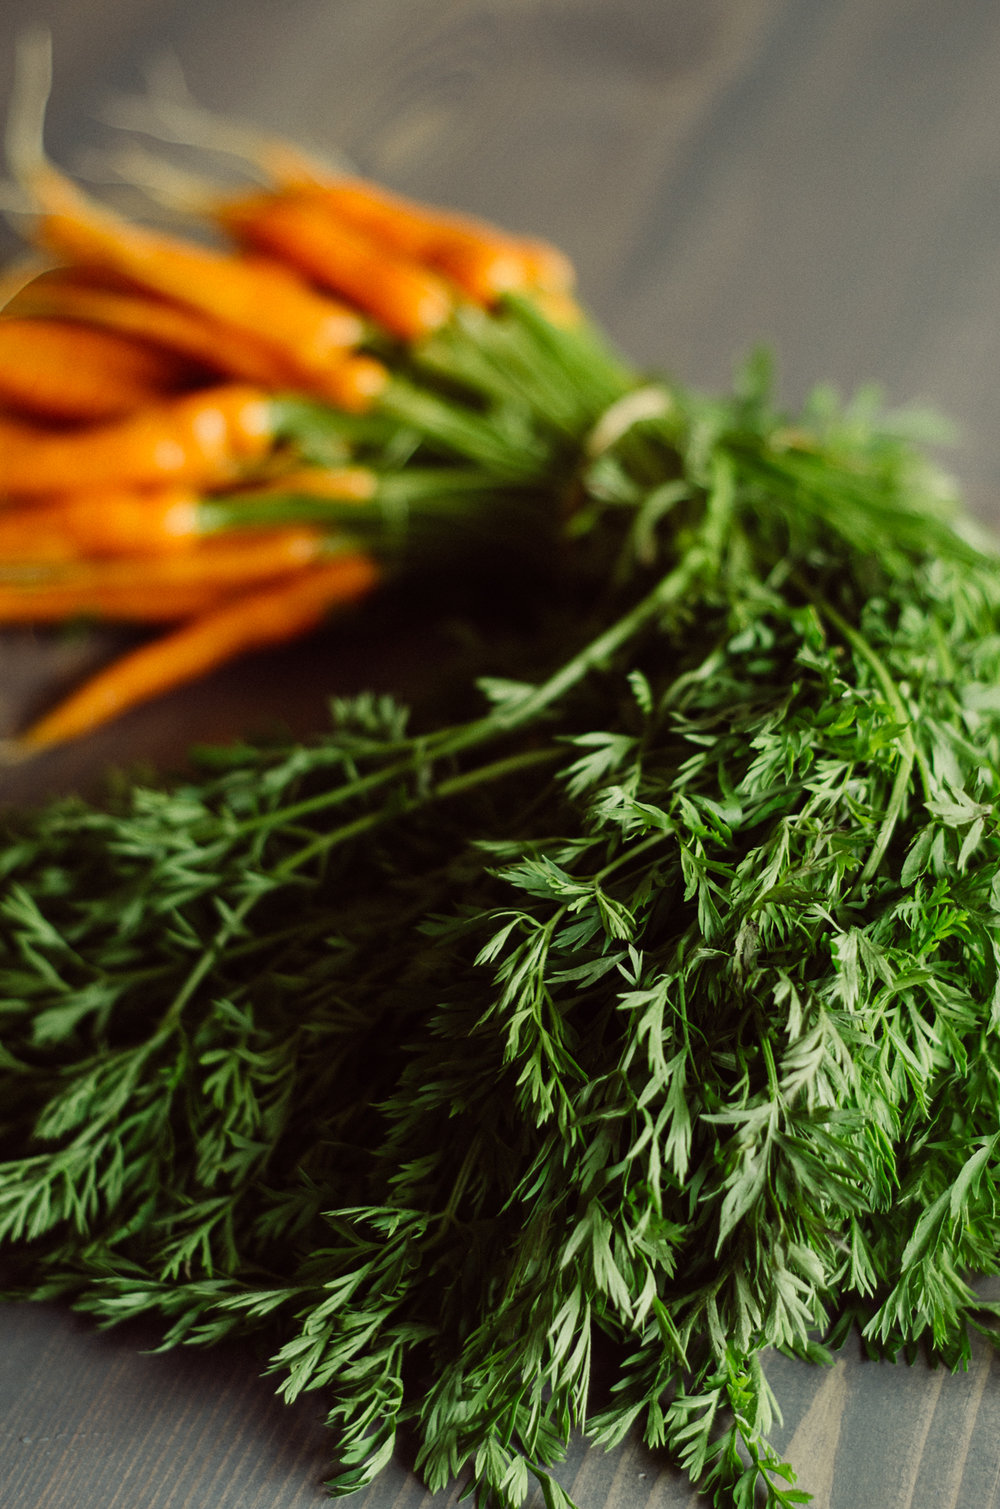 Are carrot tops edible? Carrot top recipes.